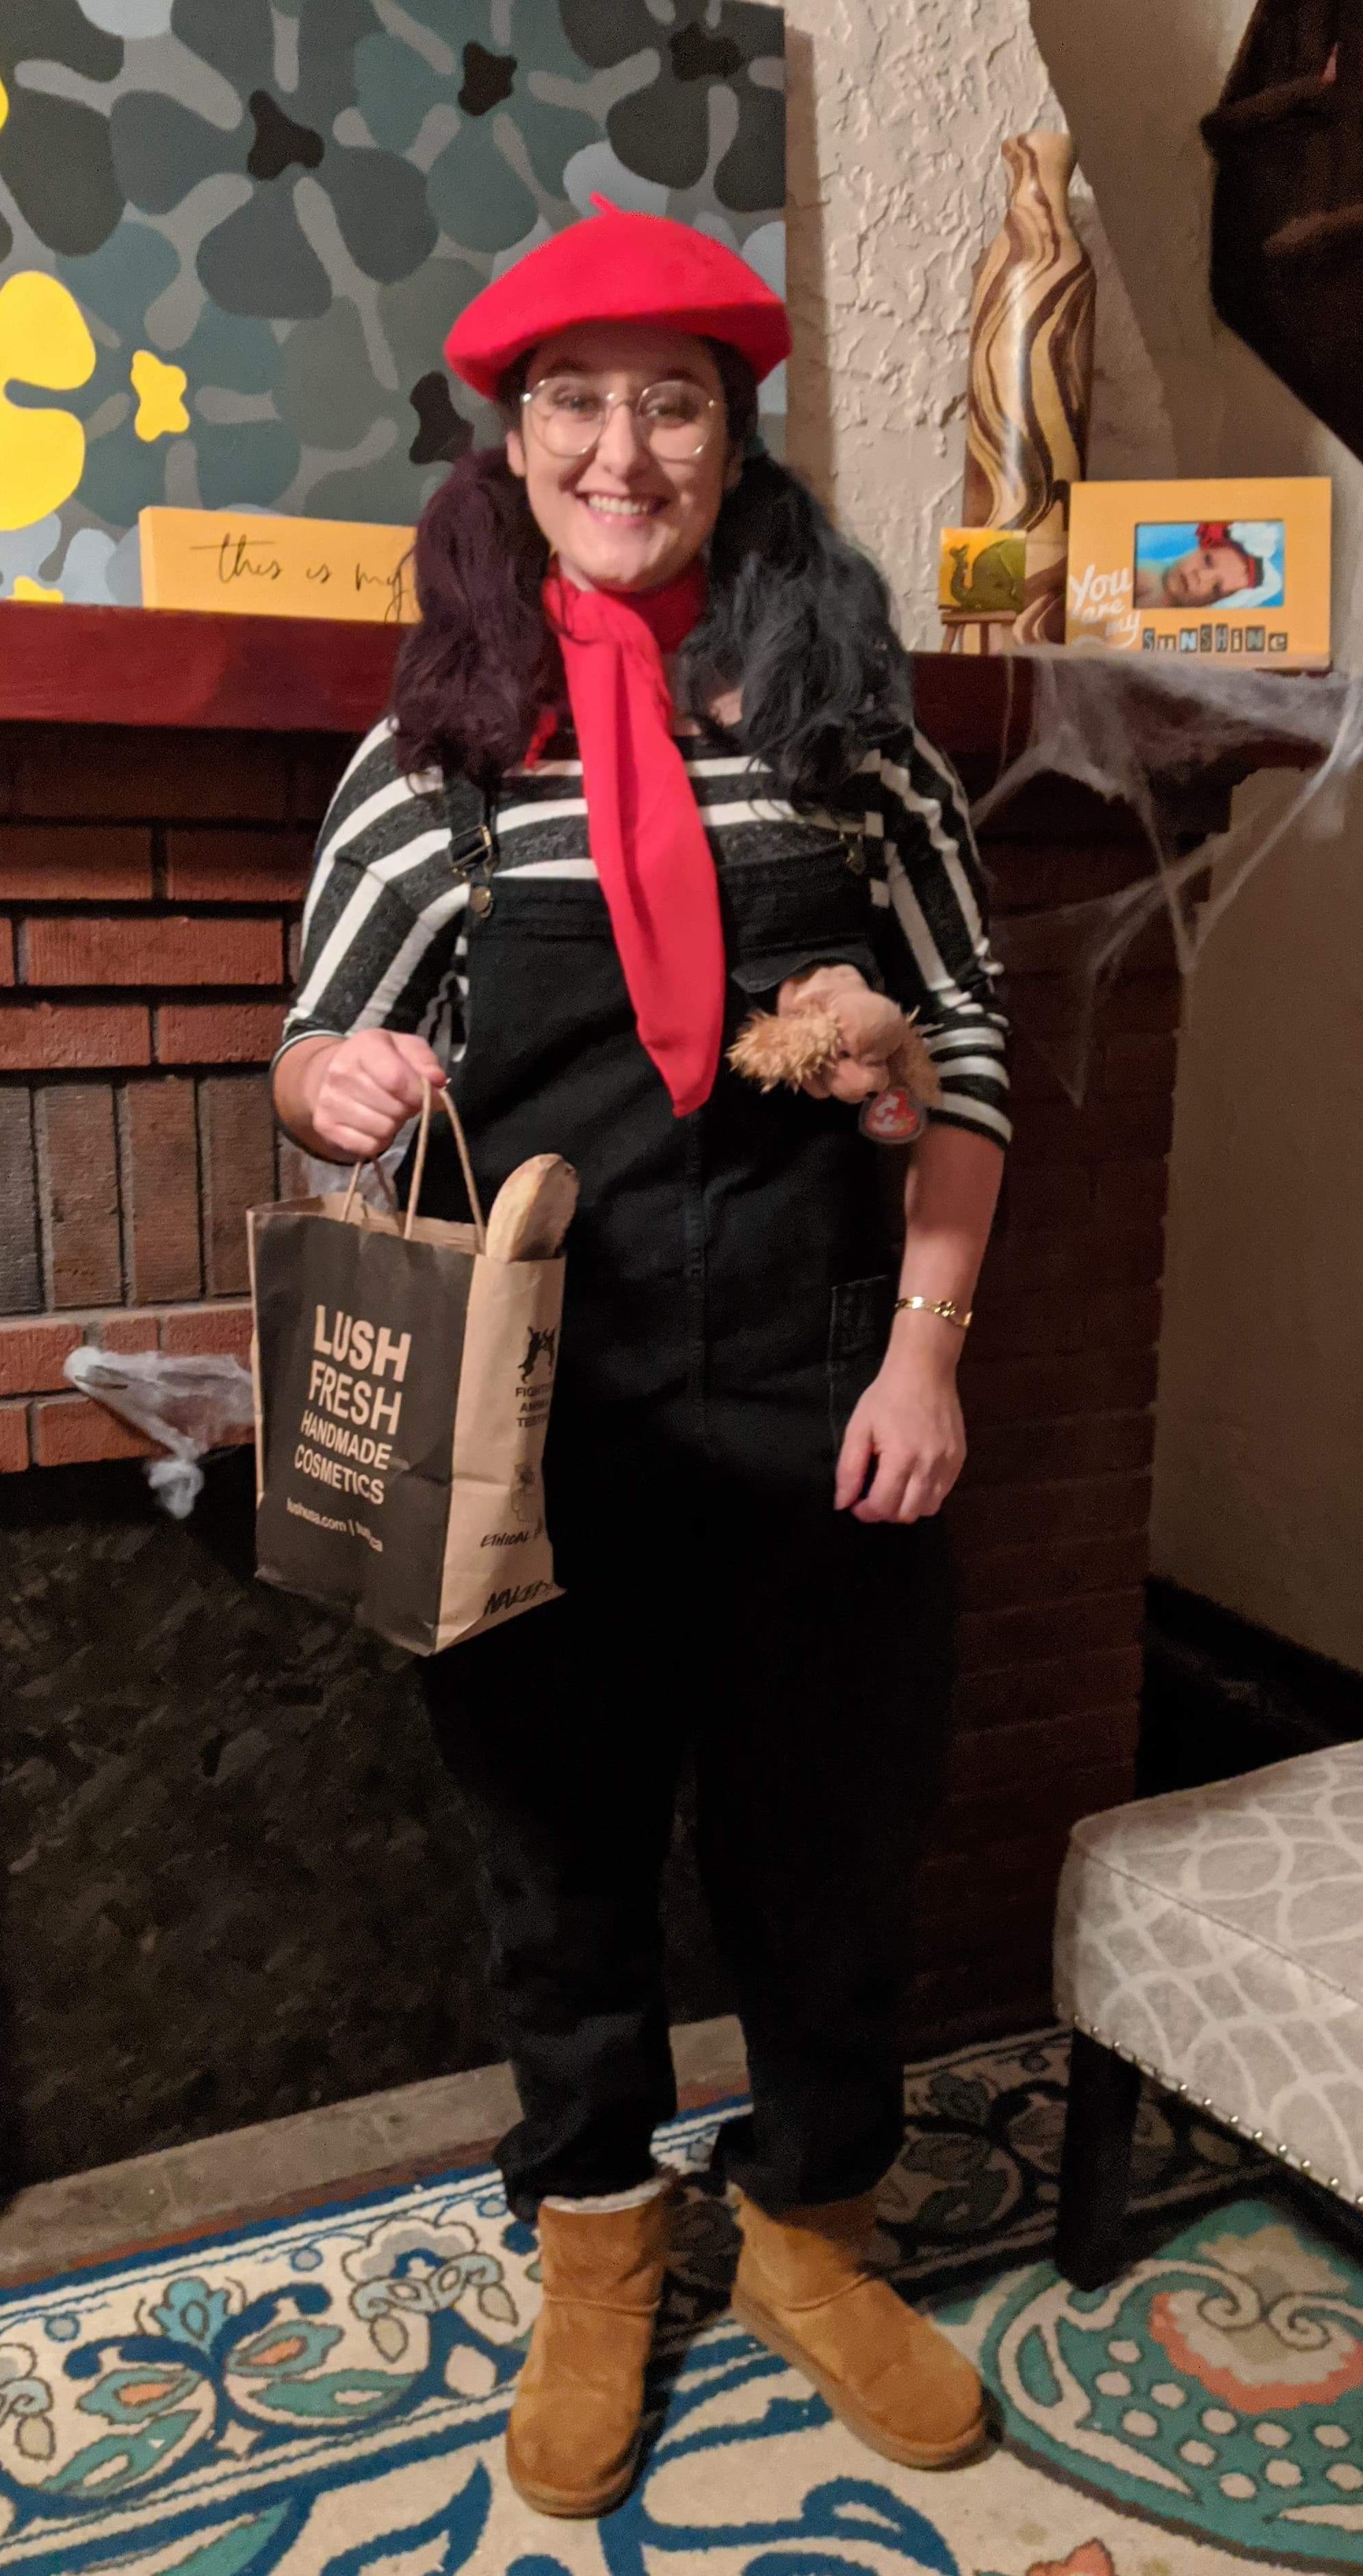 Me standing in black overalls with a red beret and scarf, holding a Lush brand paper bag with a birote sticking out. There is a cocker spaniel beanie babie in my pocket.